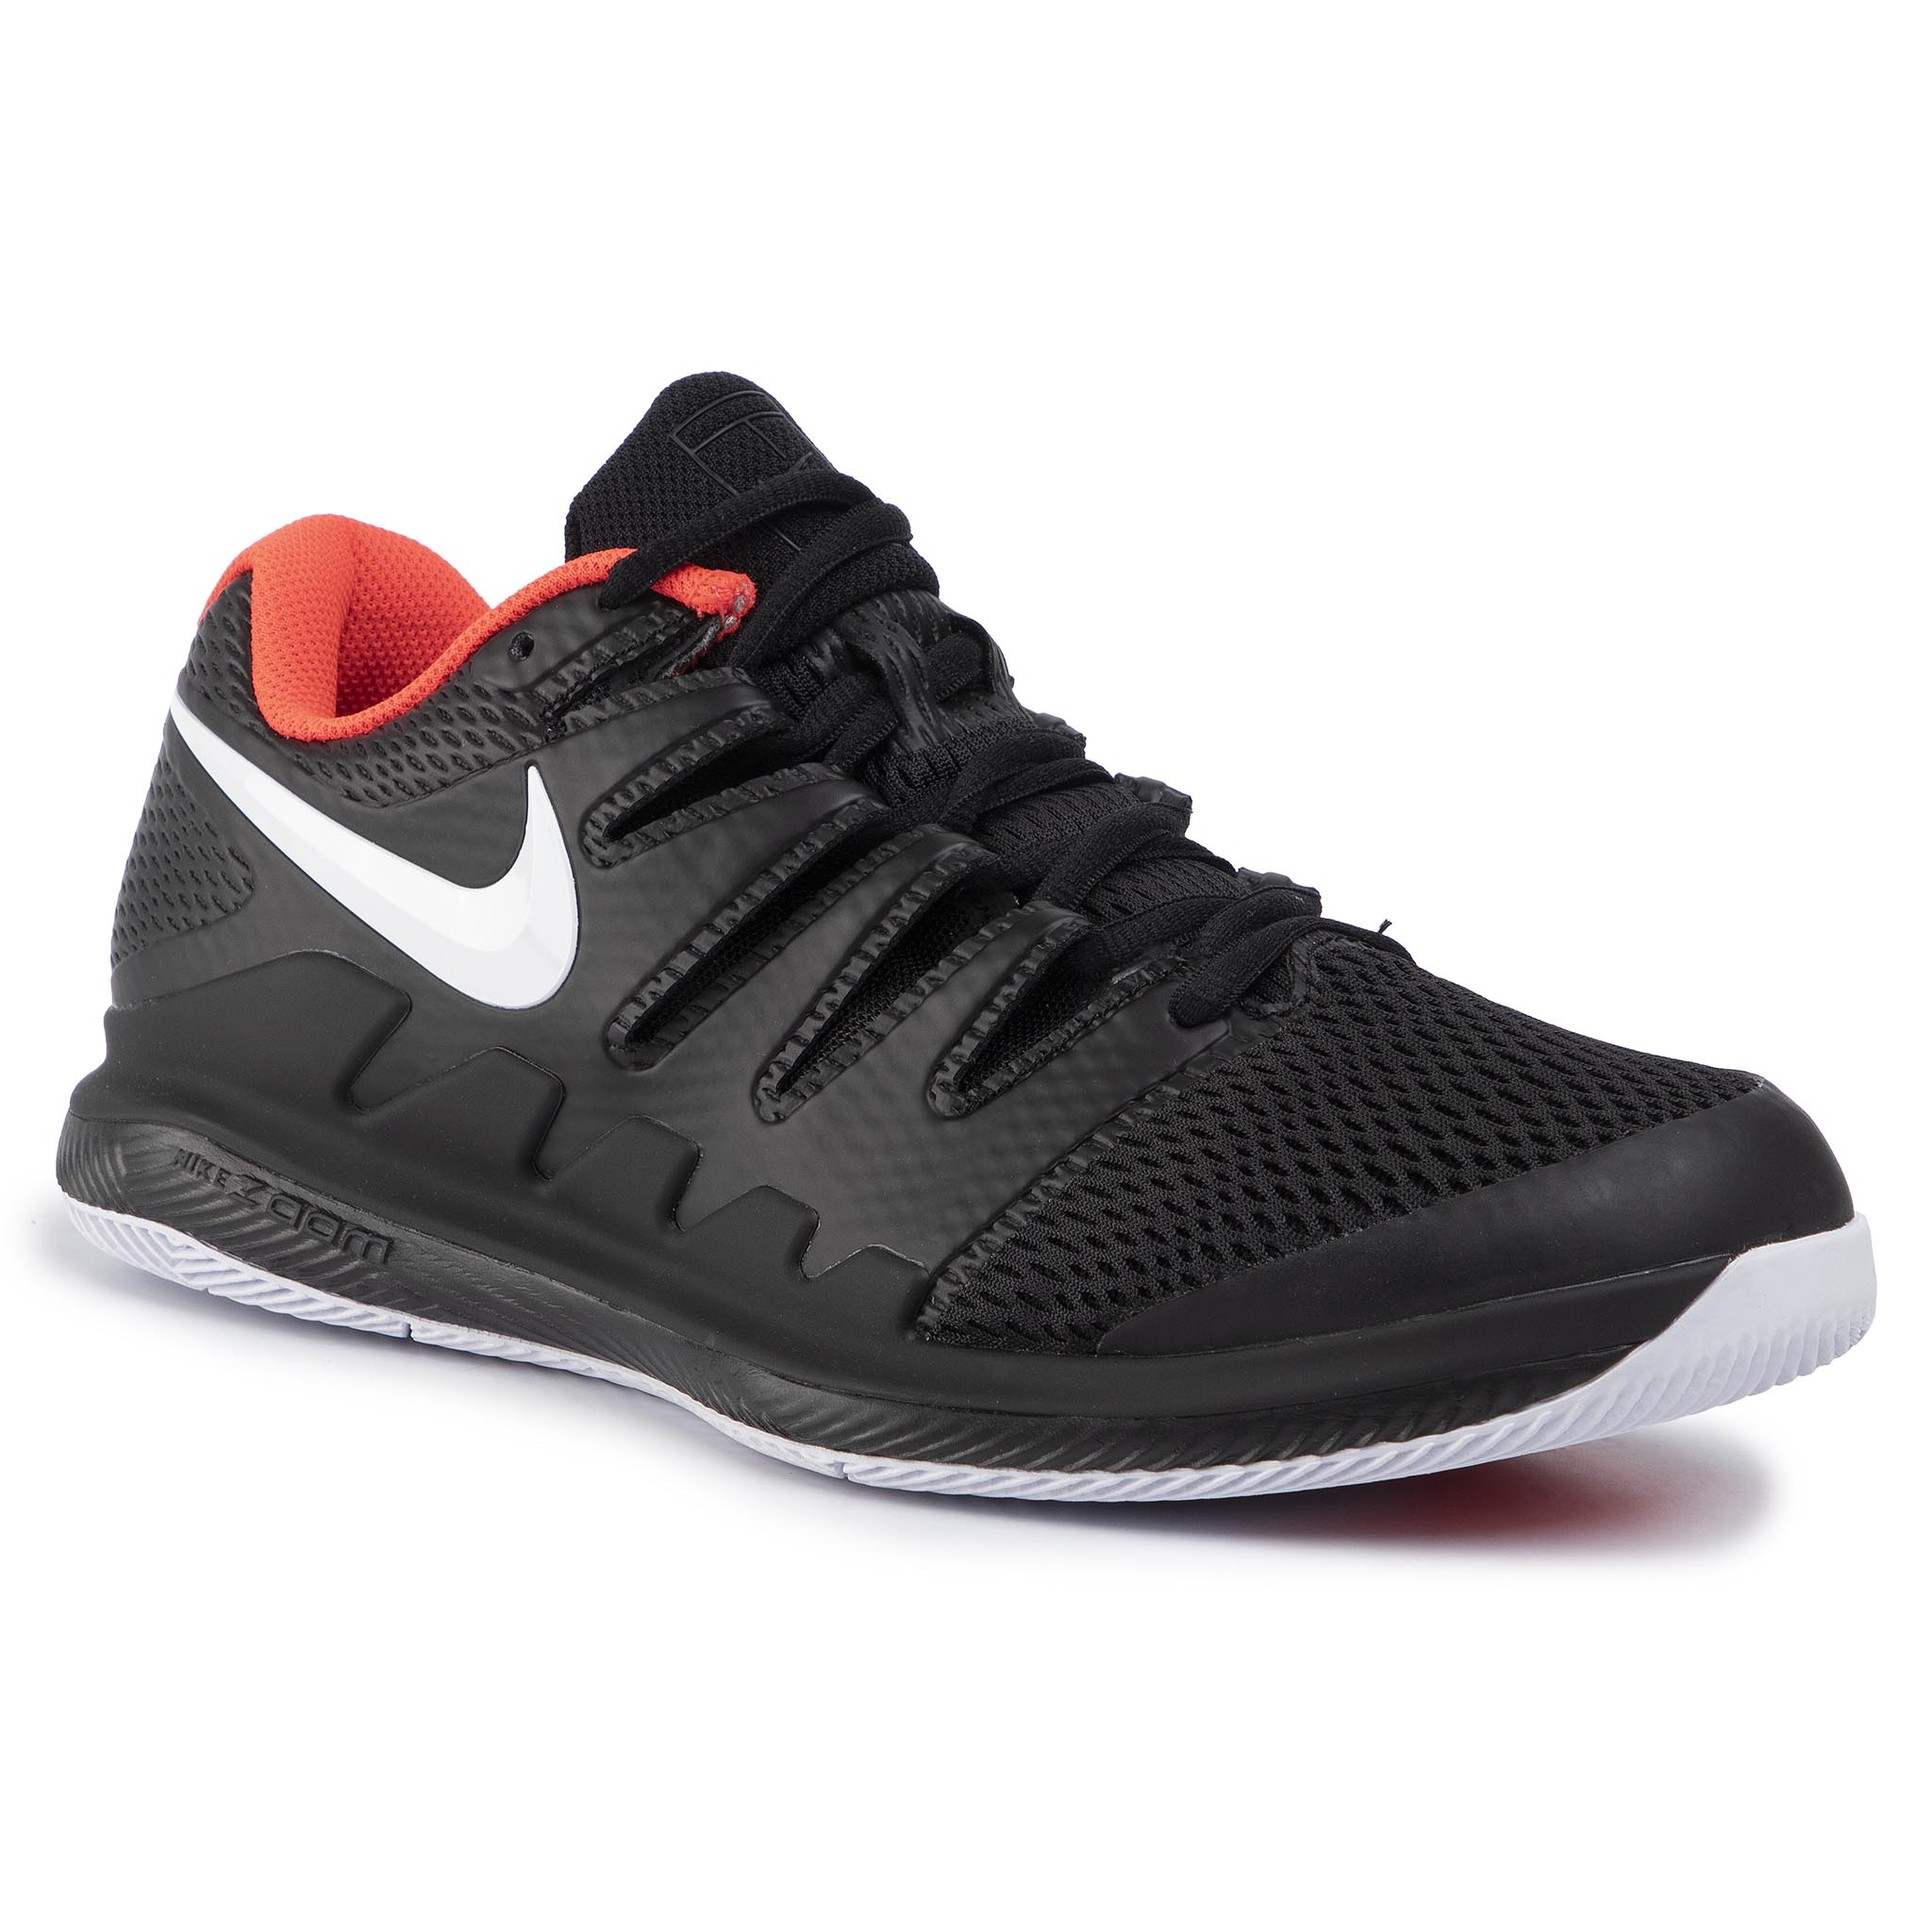 Pantofi Nike - Air Zoom Vapor X Hc Aa8030 016 Black/White/Bright Crimson imagine epantofi.ro 2021